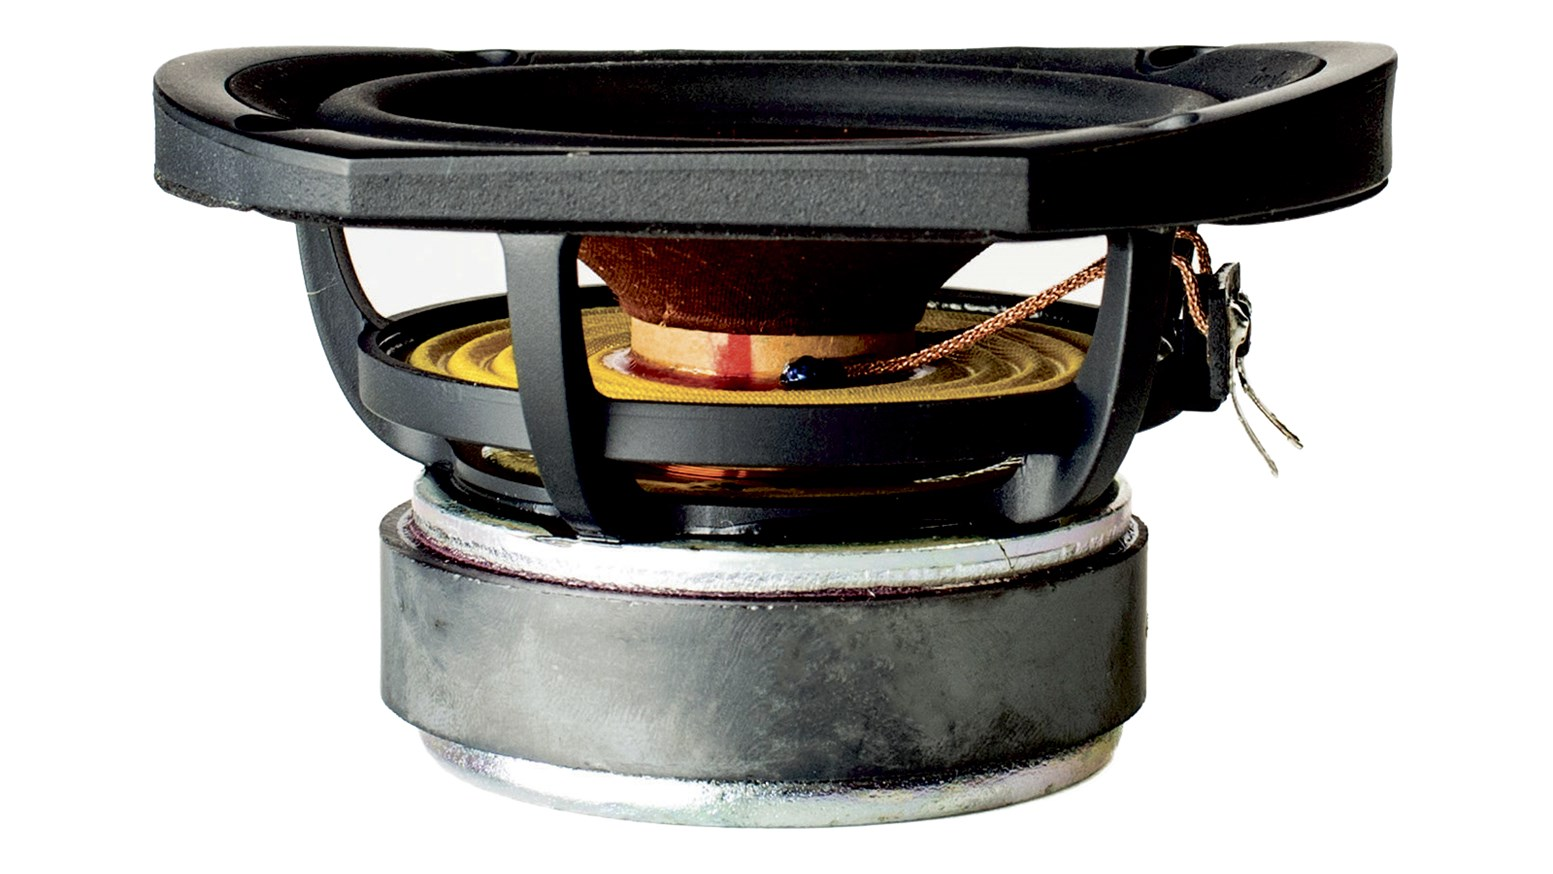 Dali Fazon Mikro True Hi Fi In A Very Small Package Subwoofers Will Consistent Power To Both Maximizing Your Woofer Of This Size Zoom